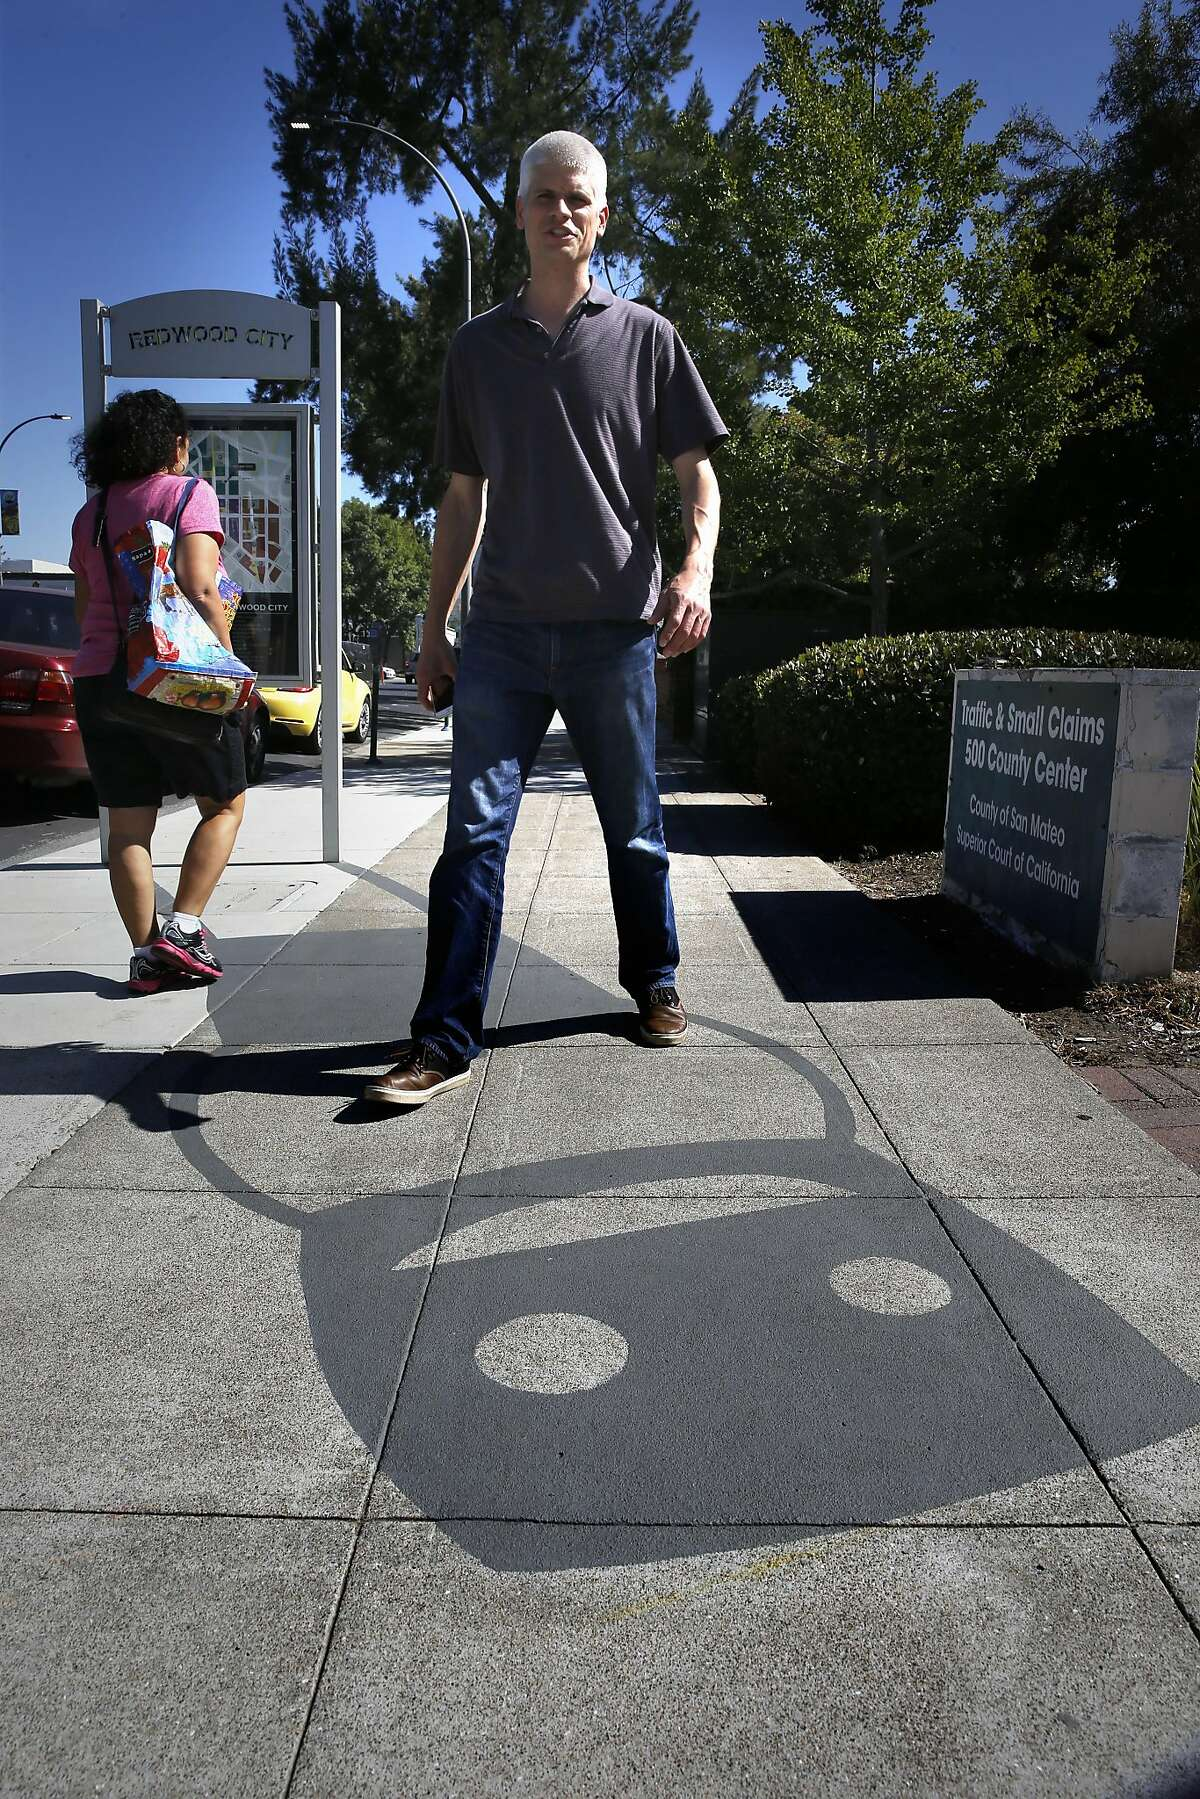 Damon Belanger, on Wed. May 18, 2016, next to one of his creations of shadow art he calls Mr. RWC. Belanger has created a series of paintings on the sidewalks of downtown Redwood City, California, that resemble the shadows thrown off from lamp posts, fire hydrants, mail boxes and bike racks.